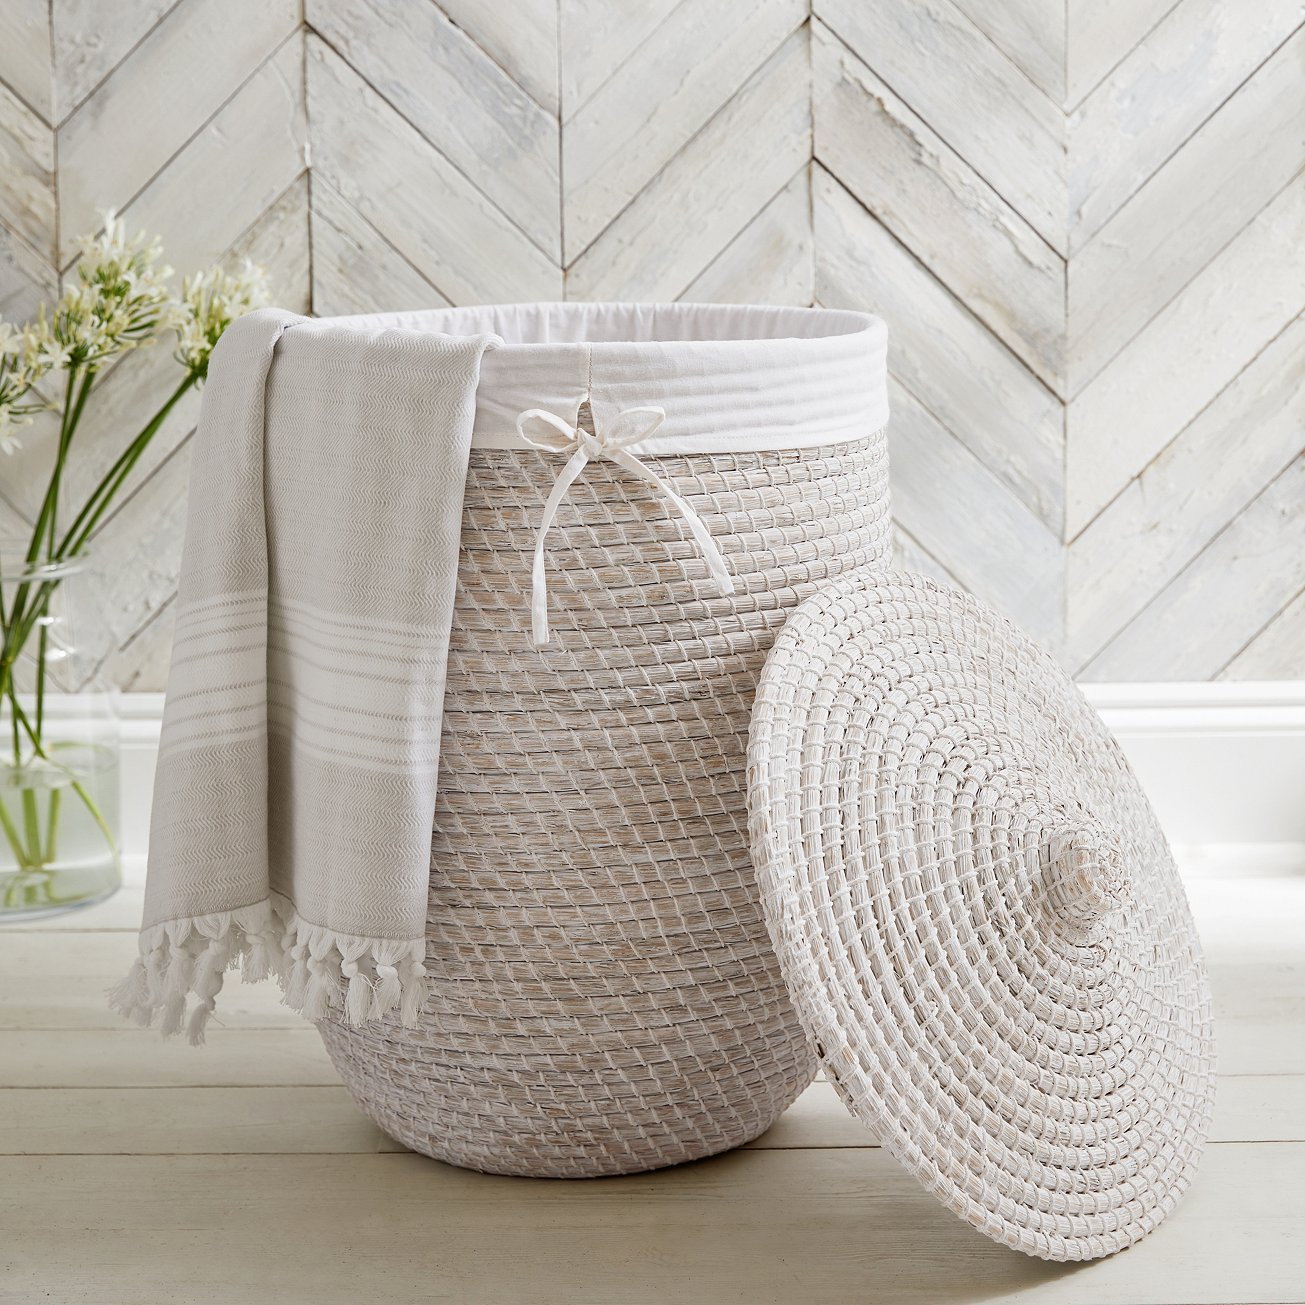 The Hand woven seagrass laundry basket is a best seller and is handmade in Vietnam. The basket has a matching lid and removable cotton liner to make transferring to your washing machine easier. - £165.00